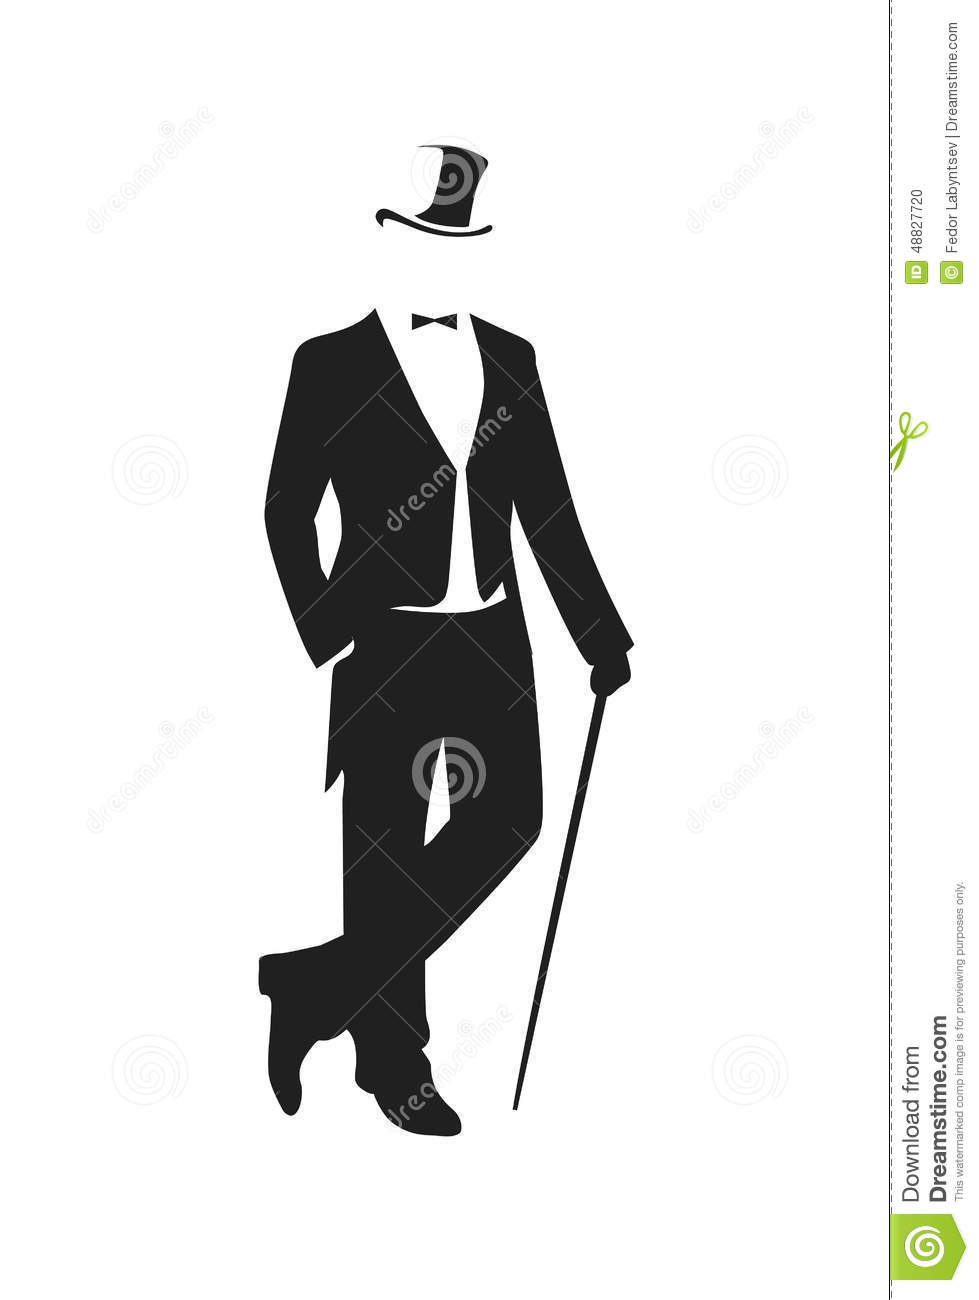 gentlemen in tuxedos clipart   clipart suggest